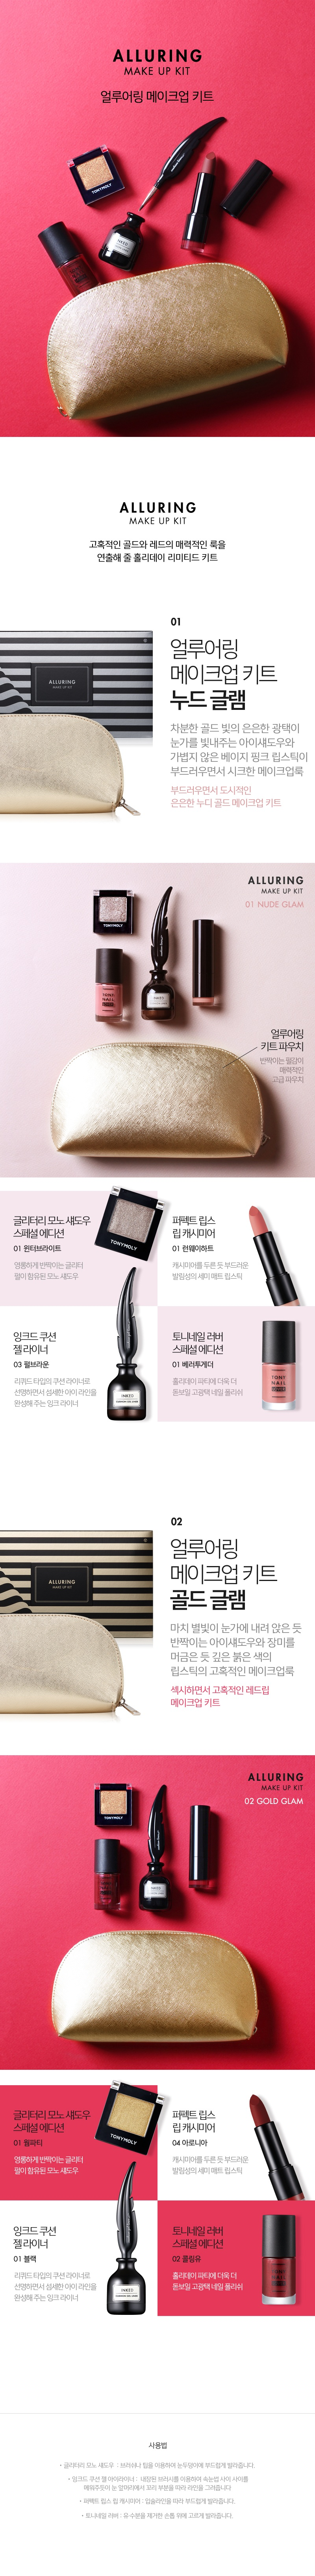 Tony Moly Alluring Make Up Kit Holiday Edition korean cosmetic makeup product online shop malaysia spain portugal1